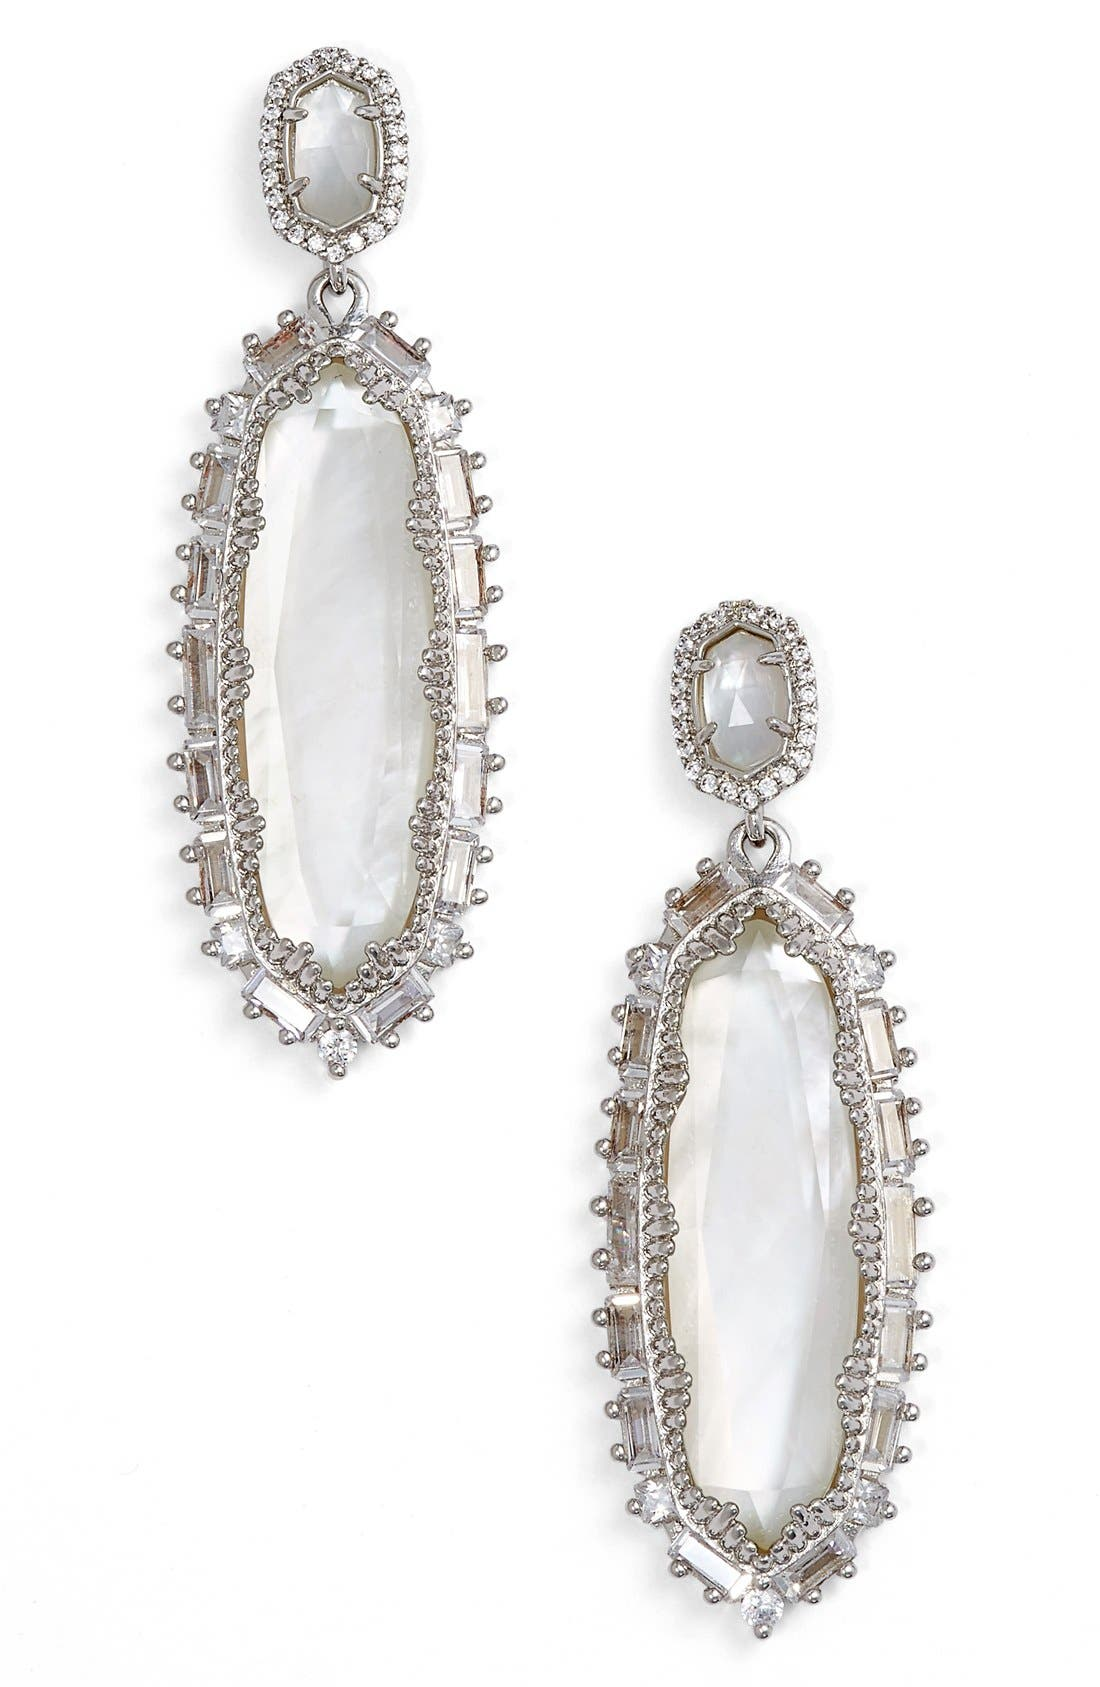 KENDRA SCOTT 'Kalina' Drop Earrings